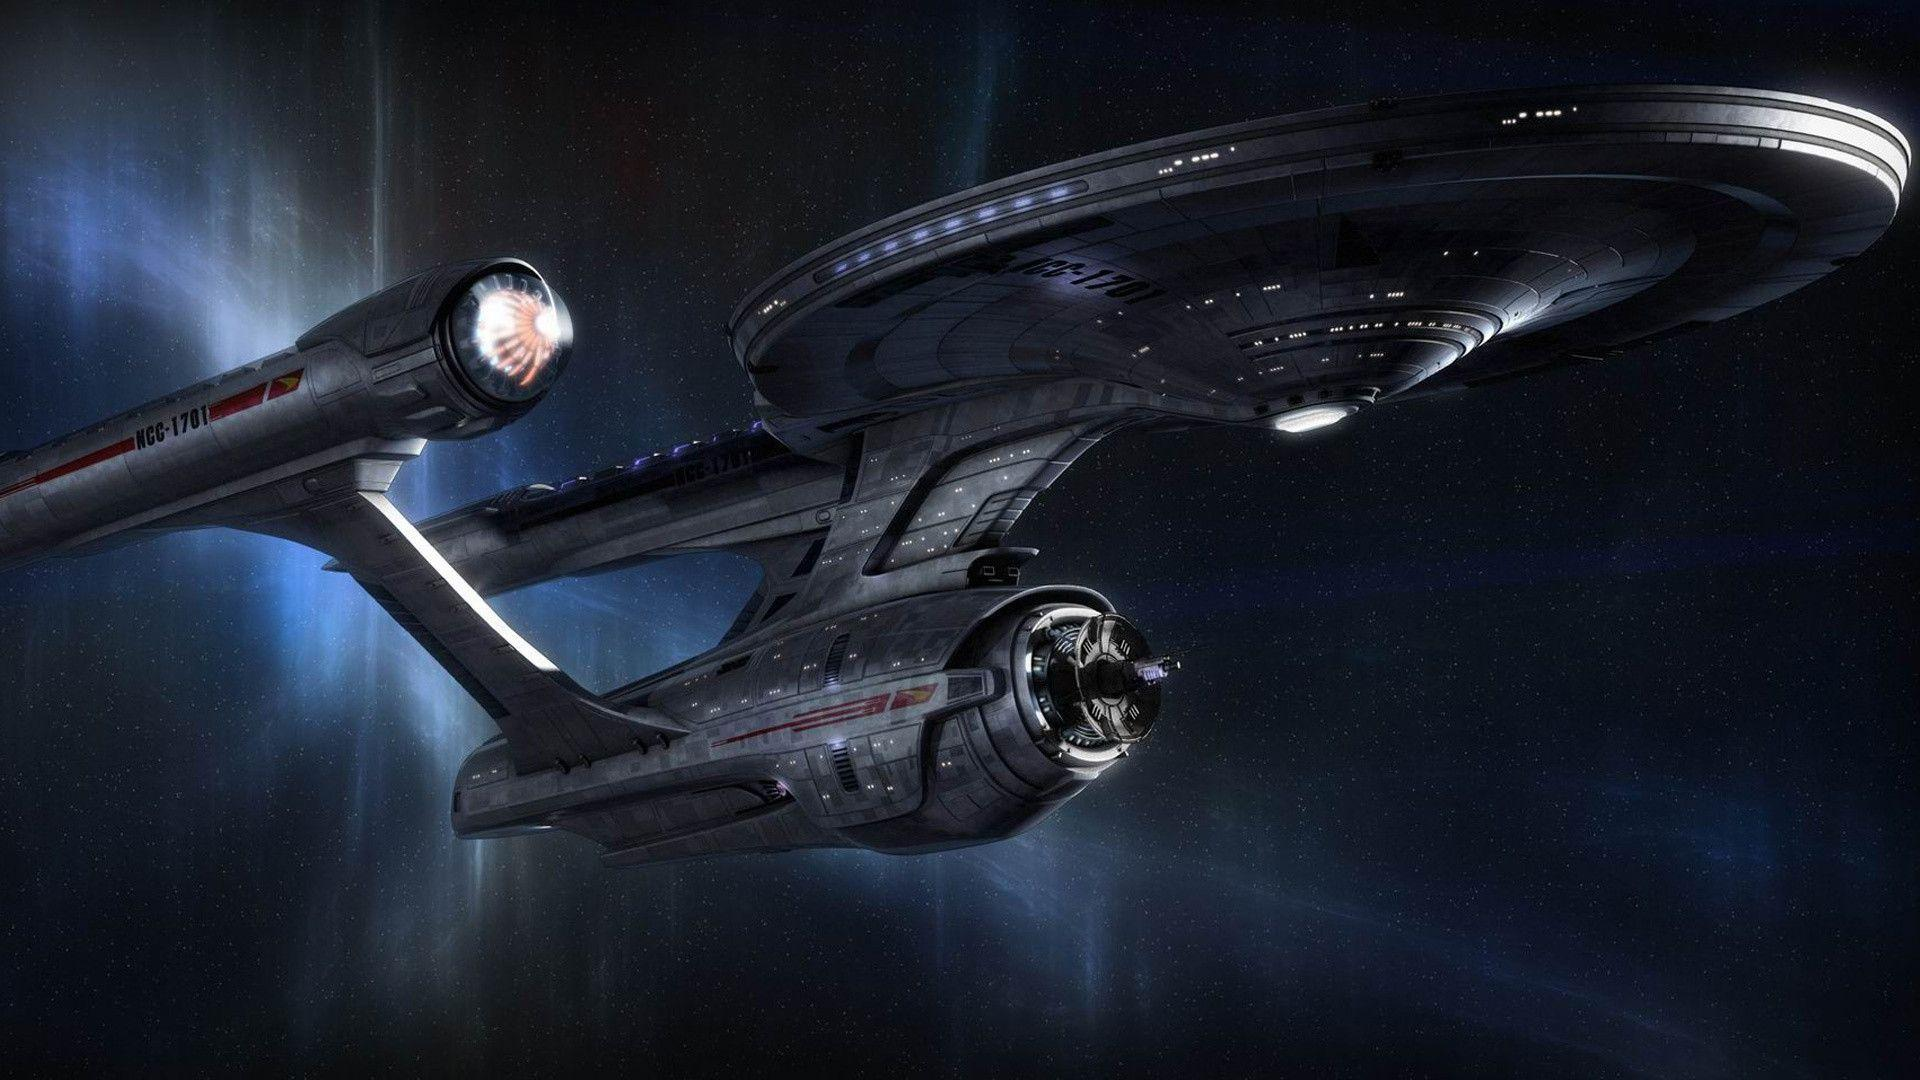 Fonds d&Star Trek : tous les wallpapers Star Trek